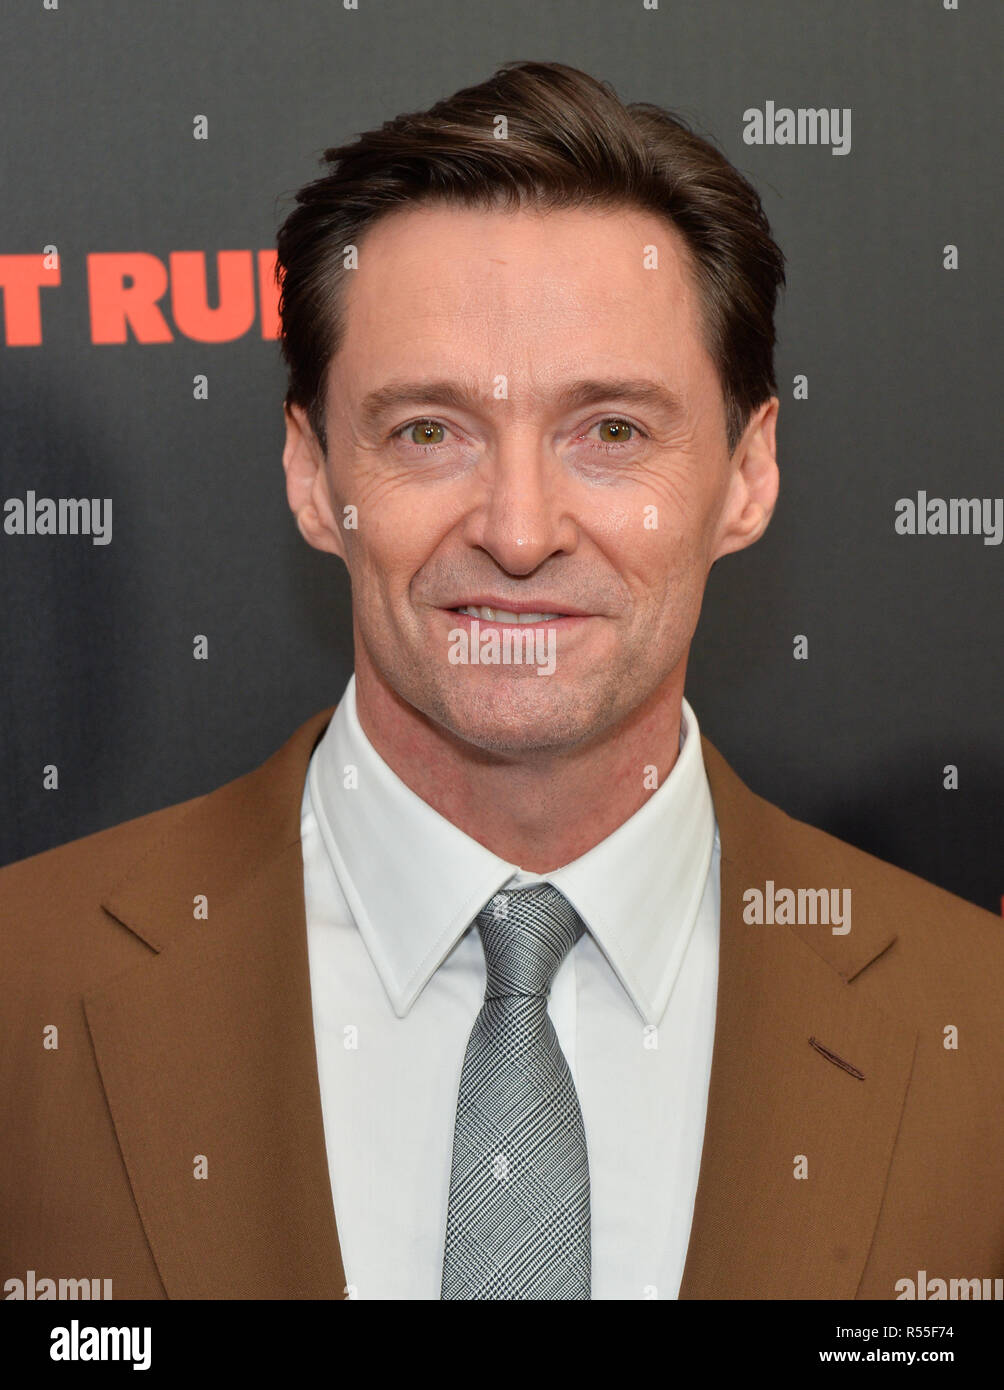 Hugh Jackman attends the New York premiere of 'The Front Runner' at the Museum of Modern Art on October 30, 2018 inNew York City. - Stock Image